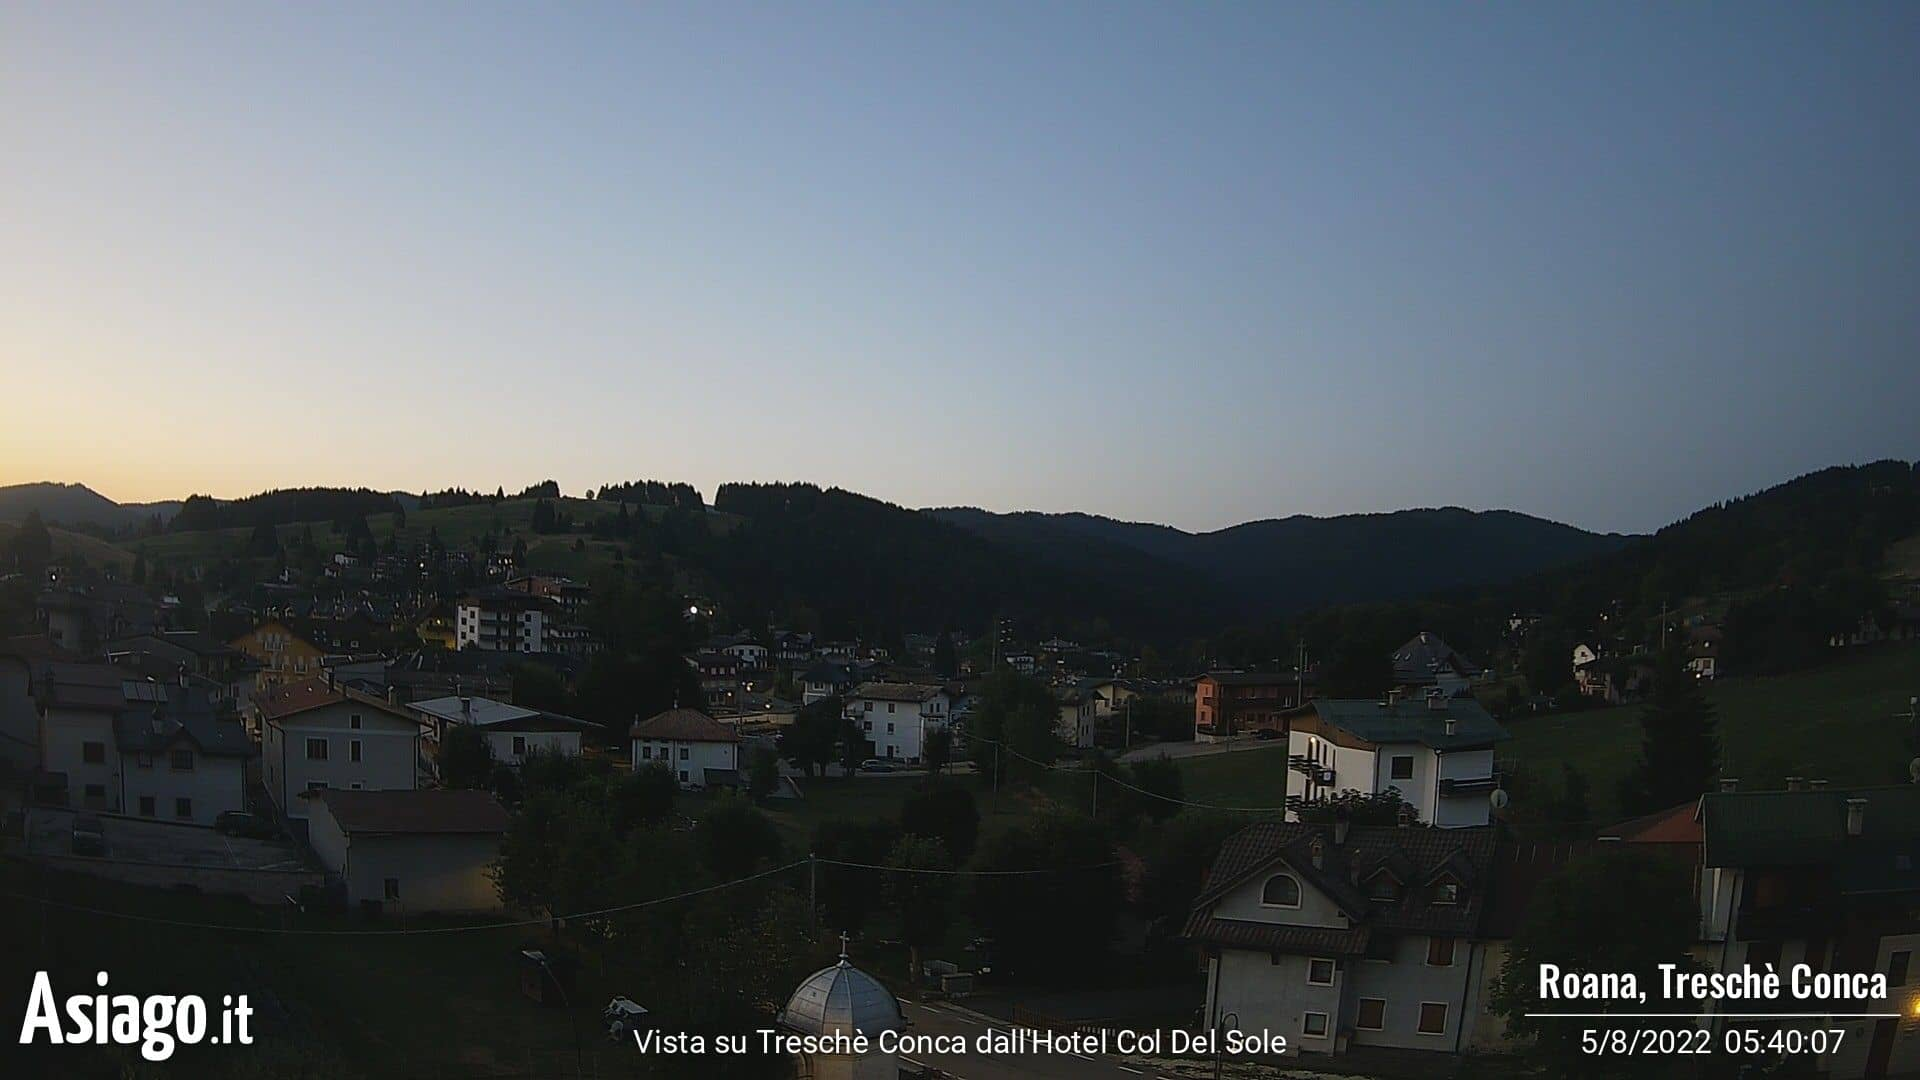 Live webcam of Asiago.It from the Hotel Col del Sole